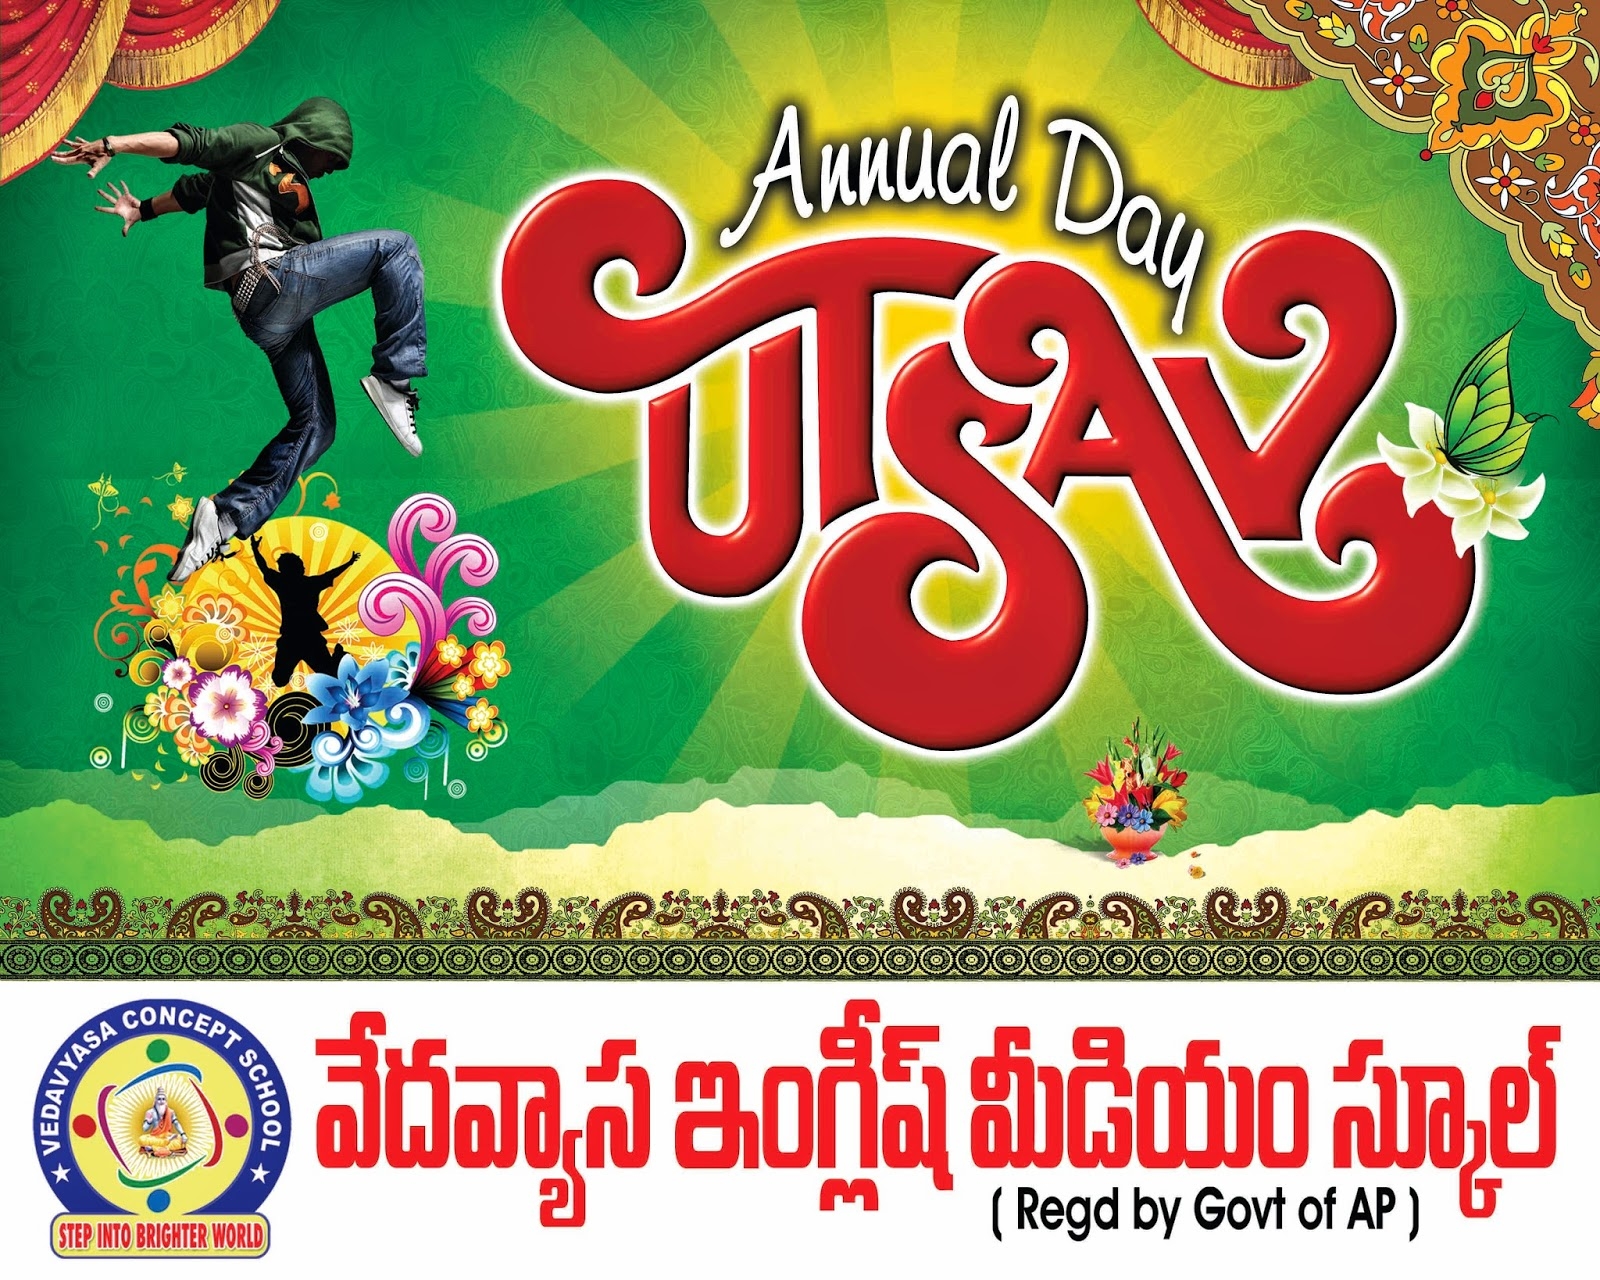 Ceremony clipart school annual day Abhayaads www design best images